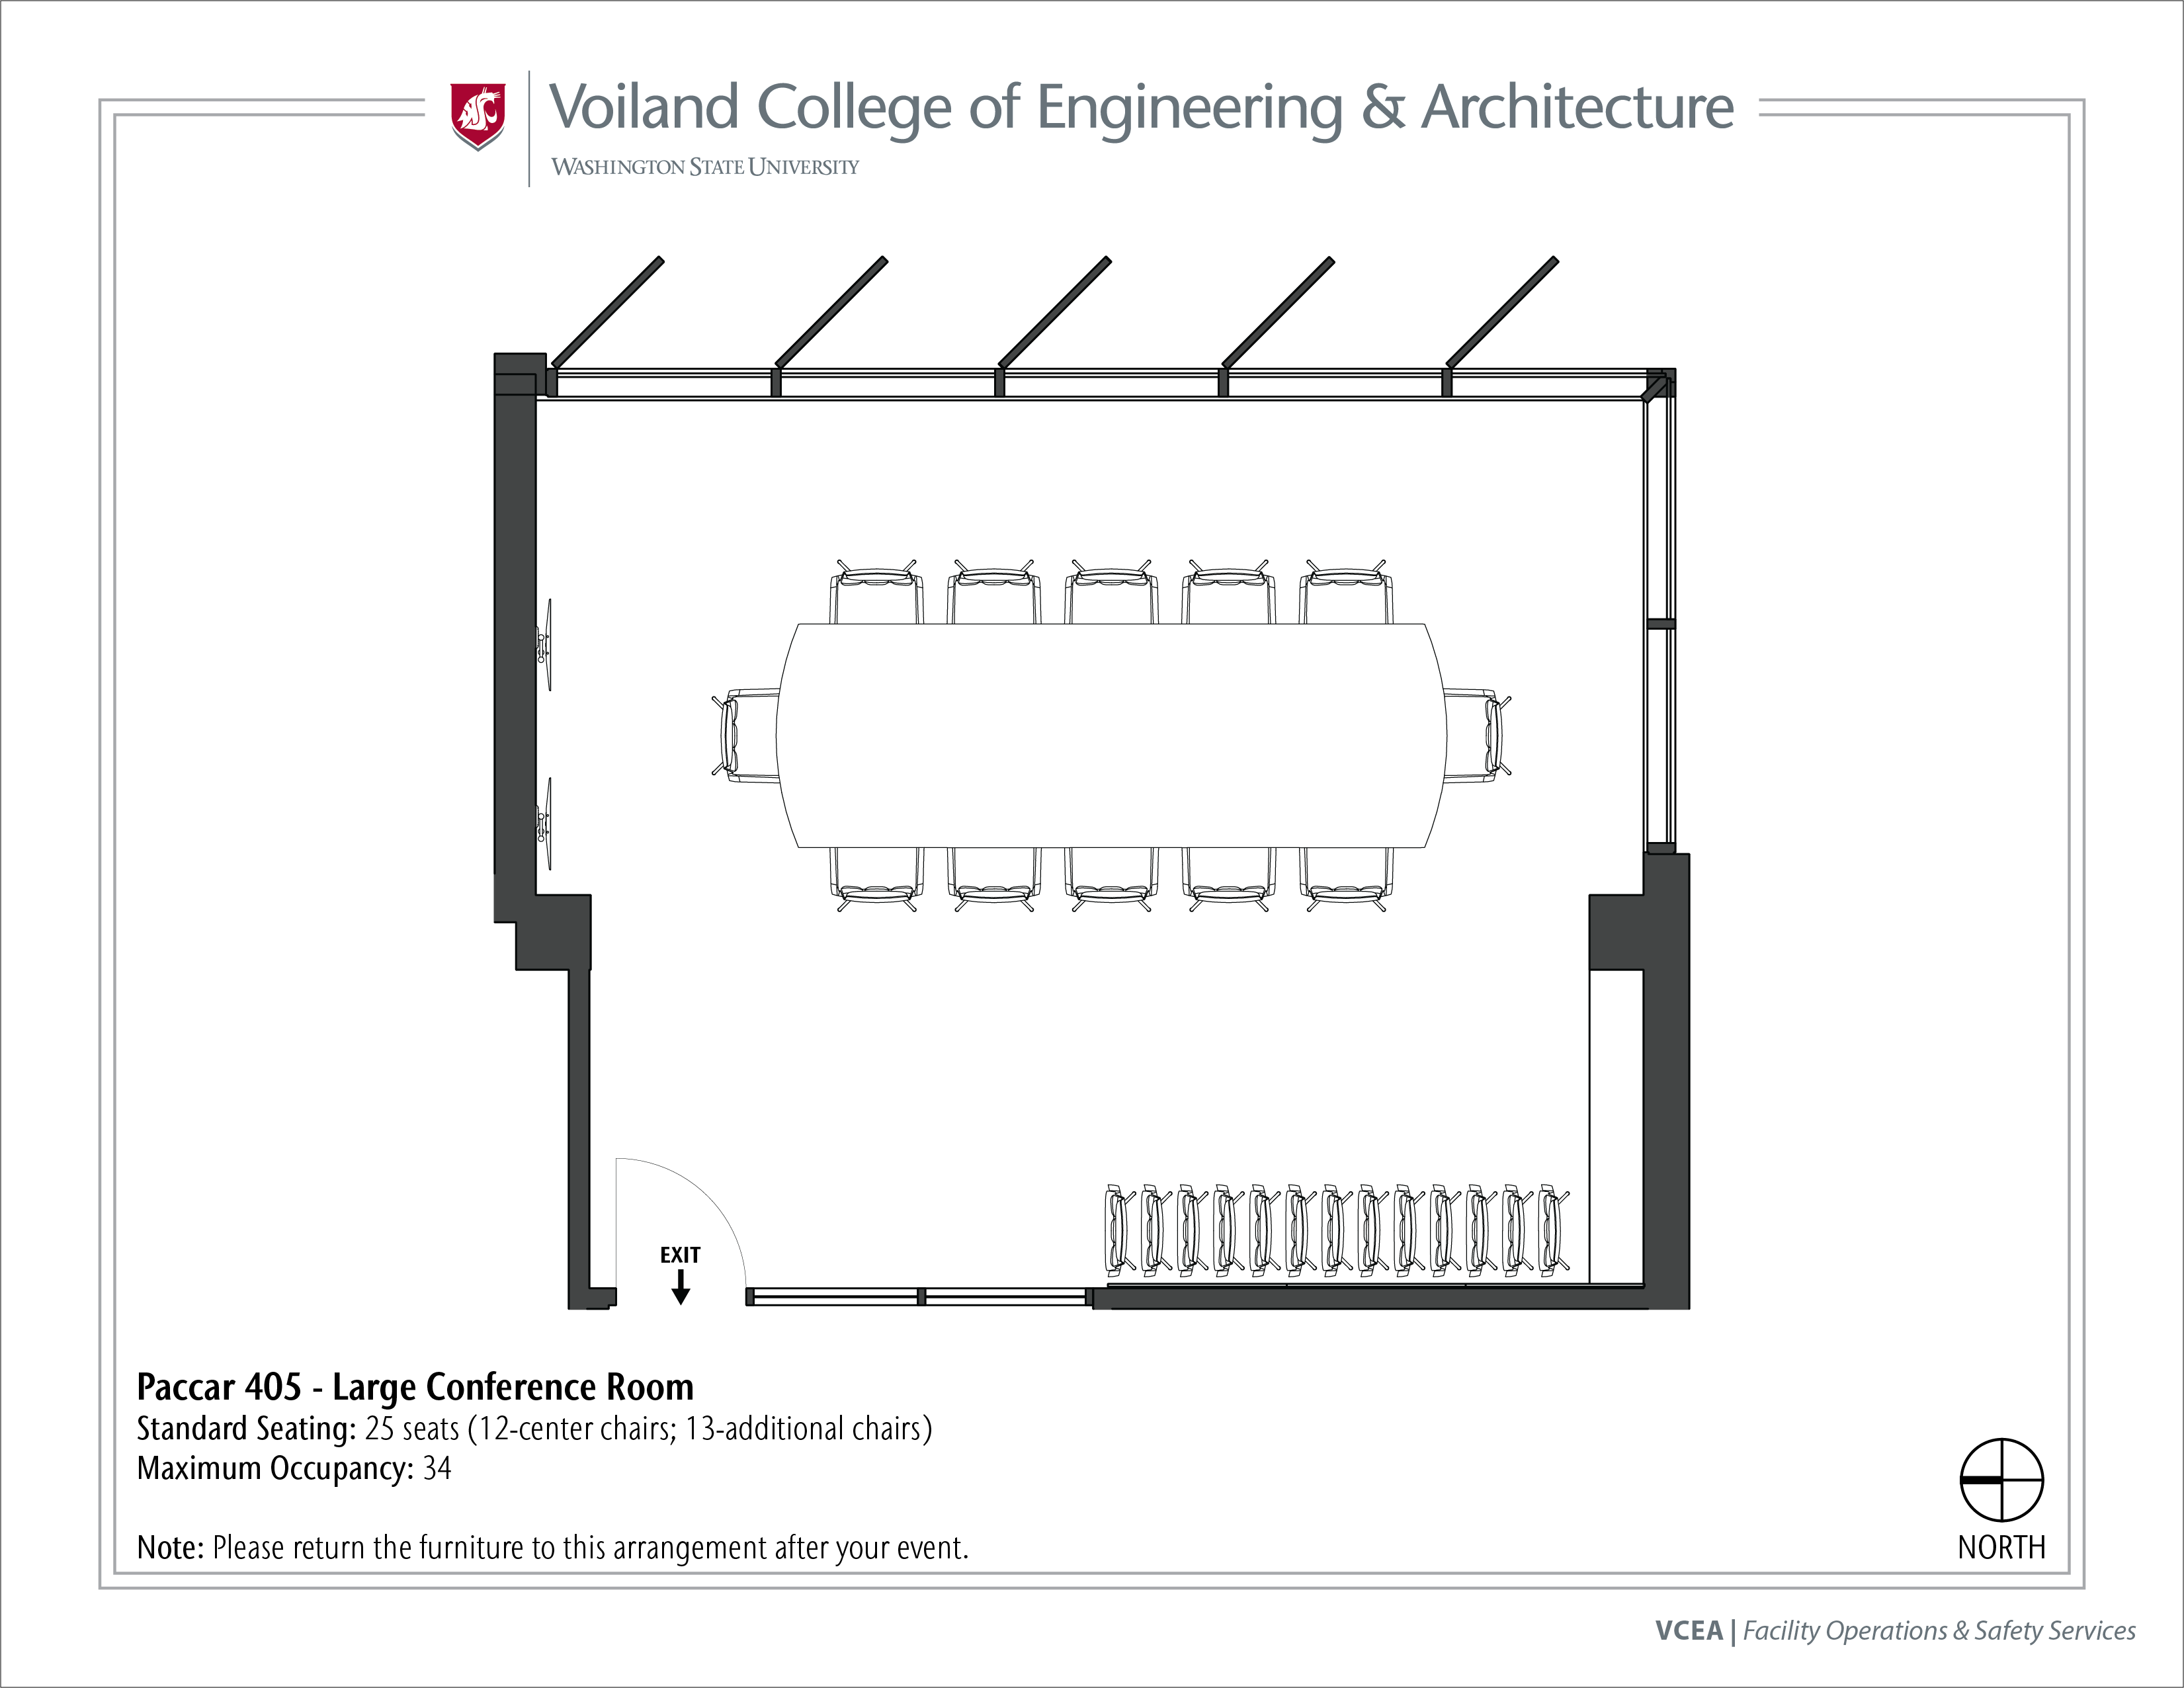 Layout of Paccar 405, Large Conference Room, at WSU Pullman